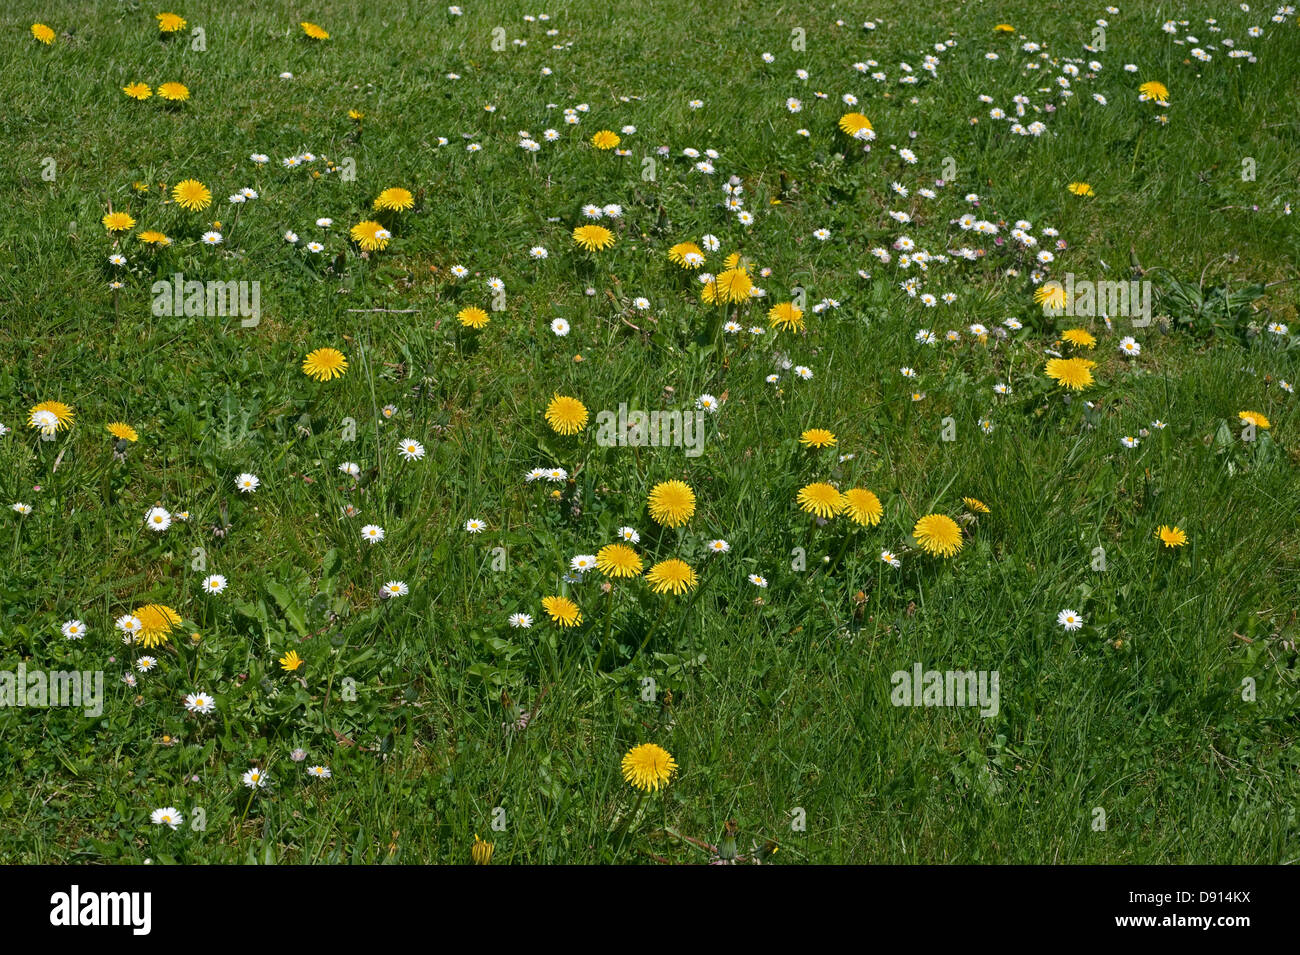 Dandelions, Taraxacum officinale, and daisies, Bellis perennis flowering in a lawn - Stock Image